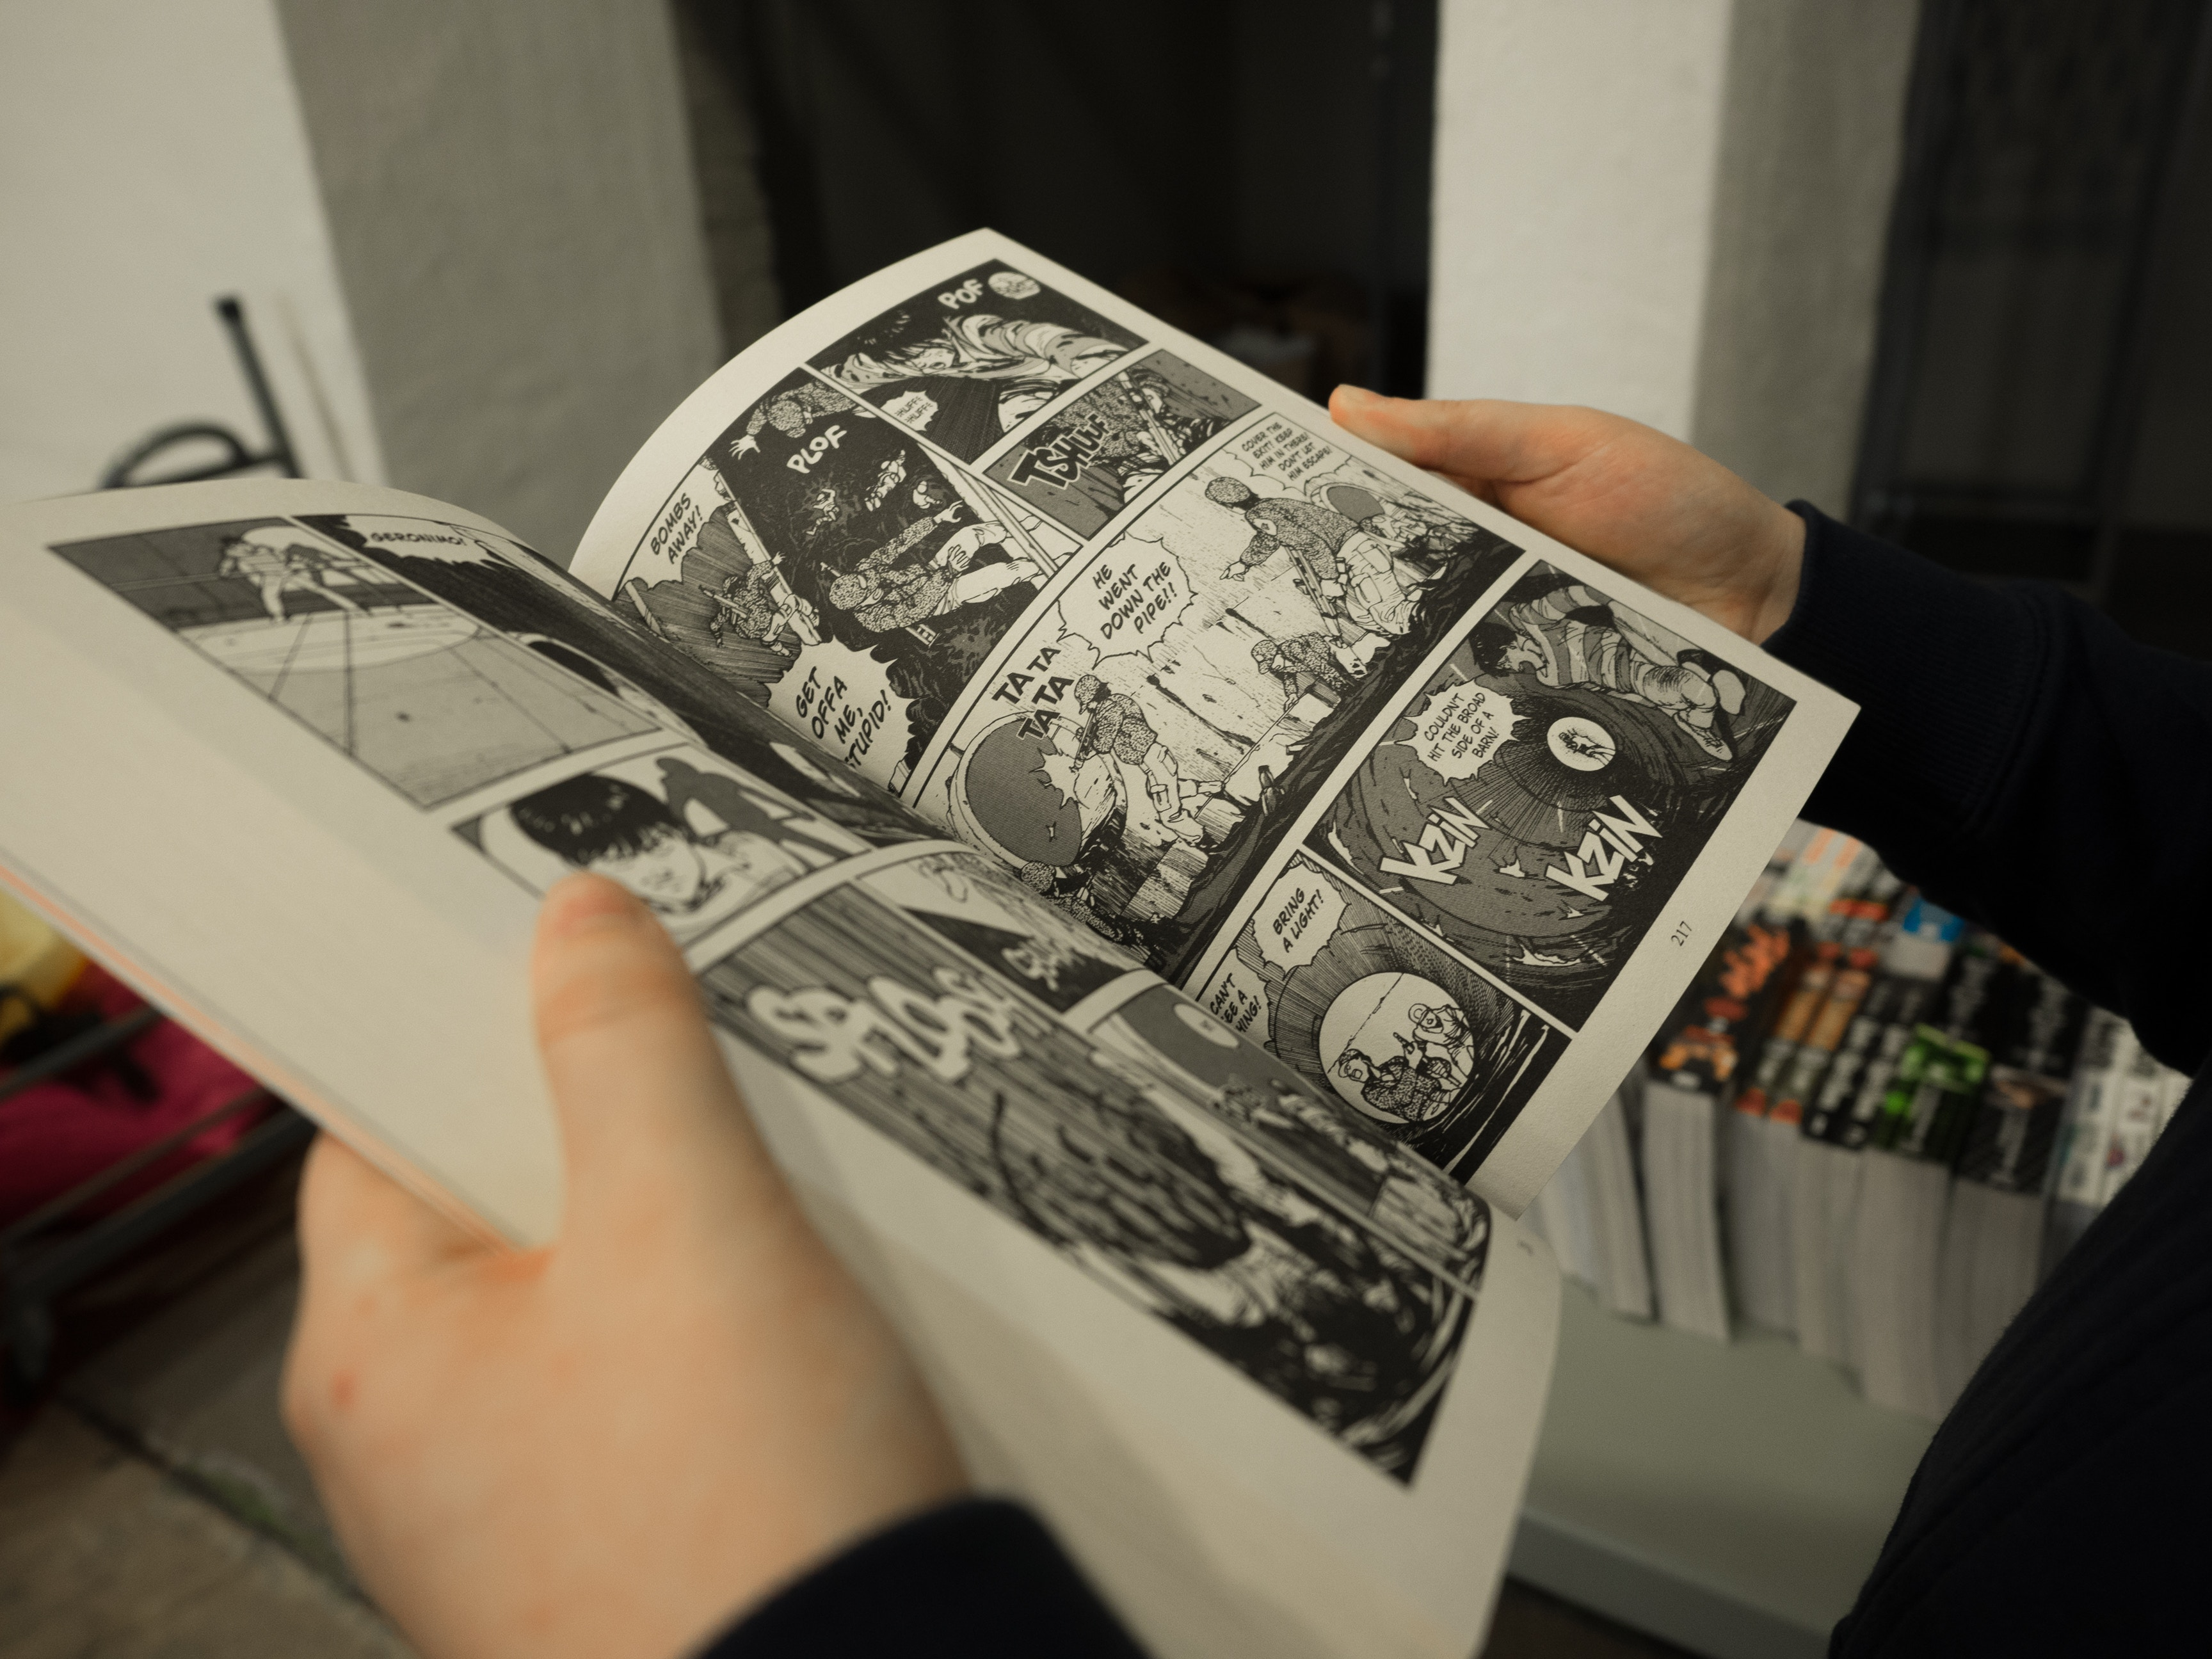 Man reading a manga comic